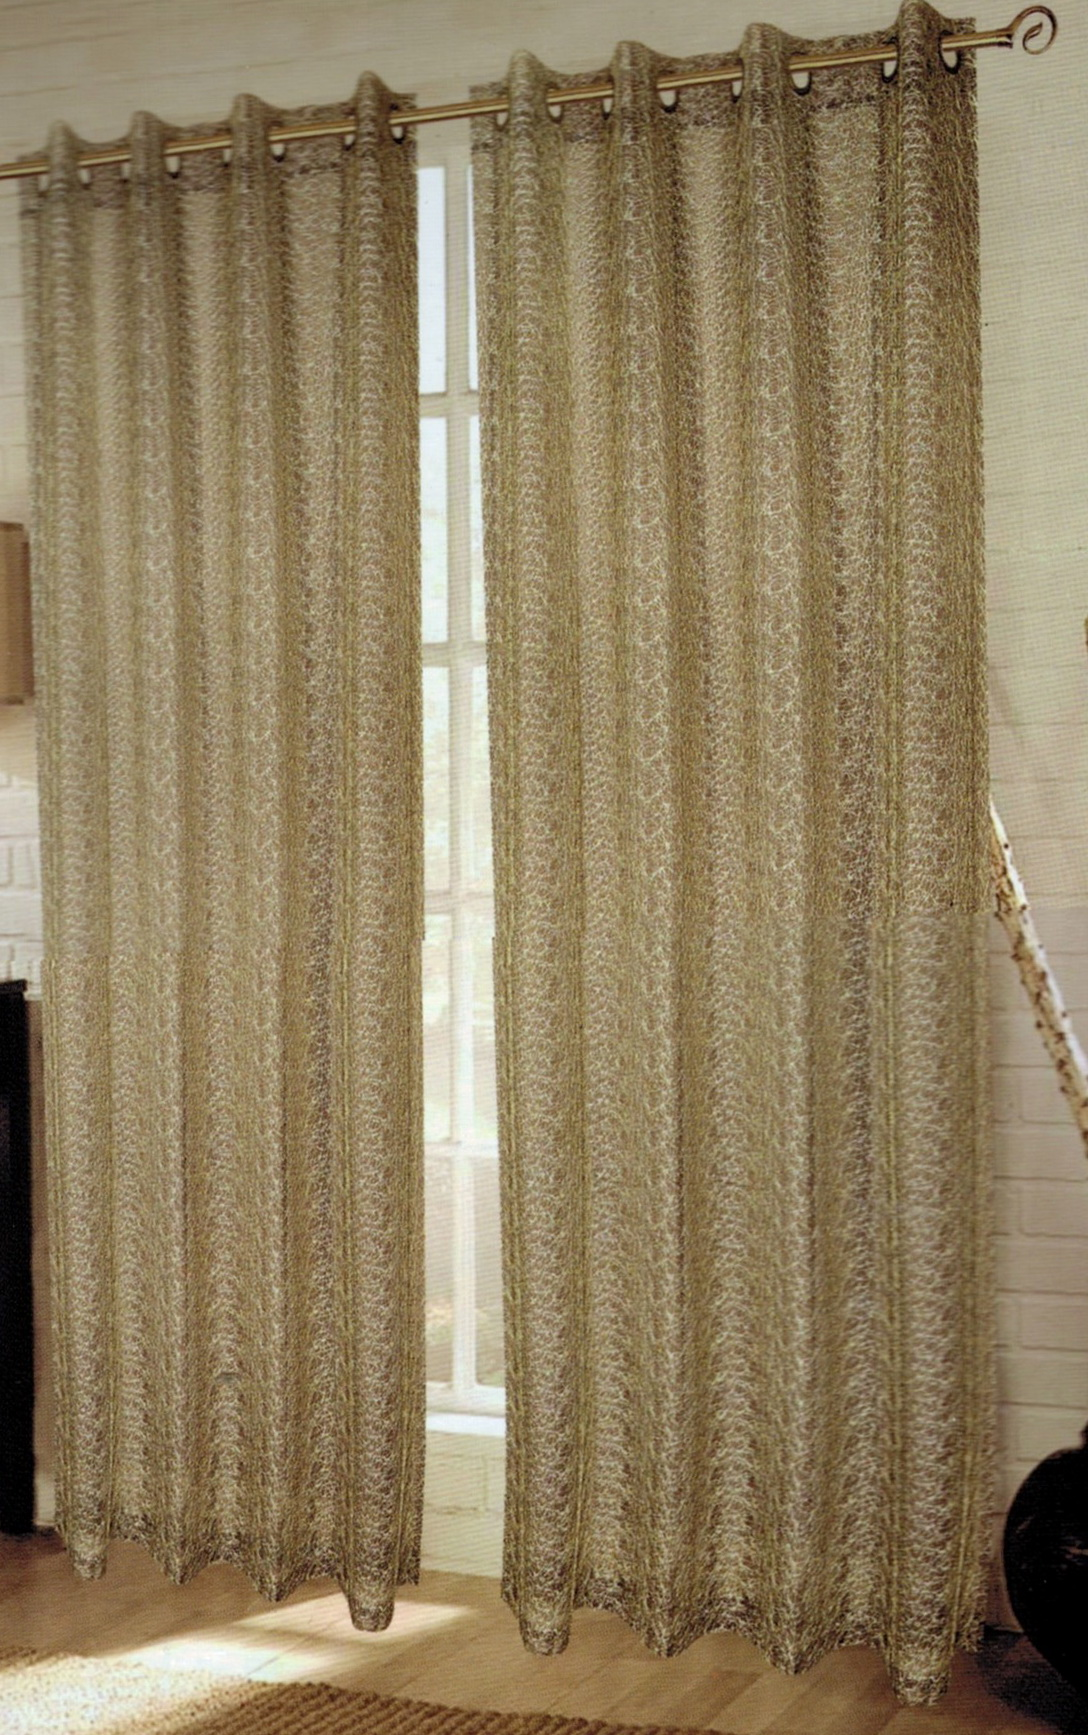 Embroidered Sheer Curtain Panels